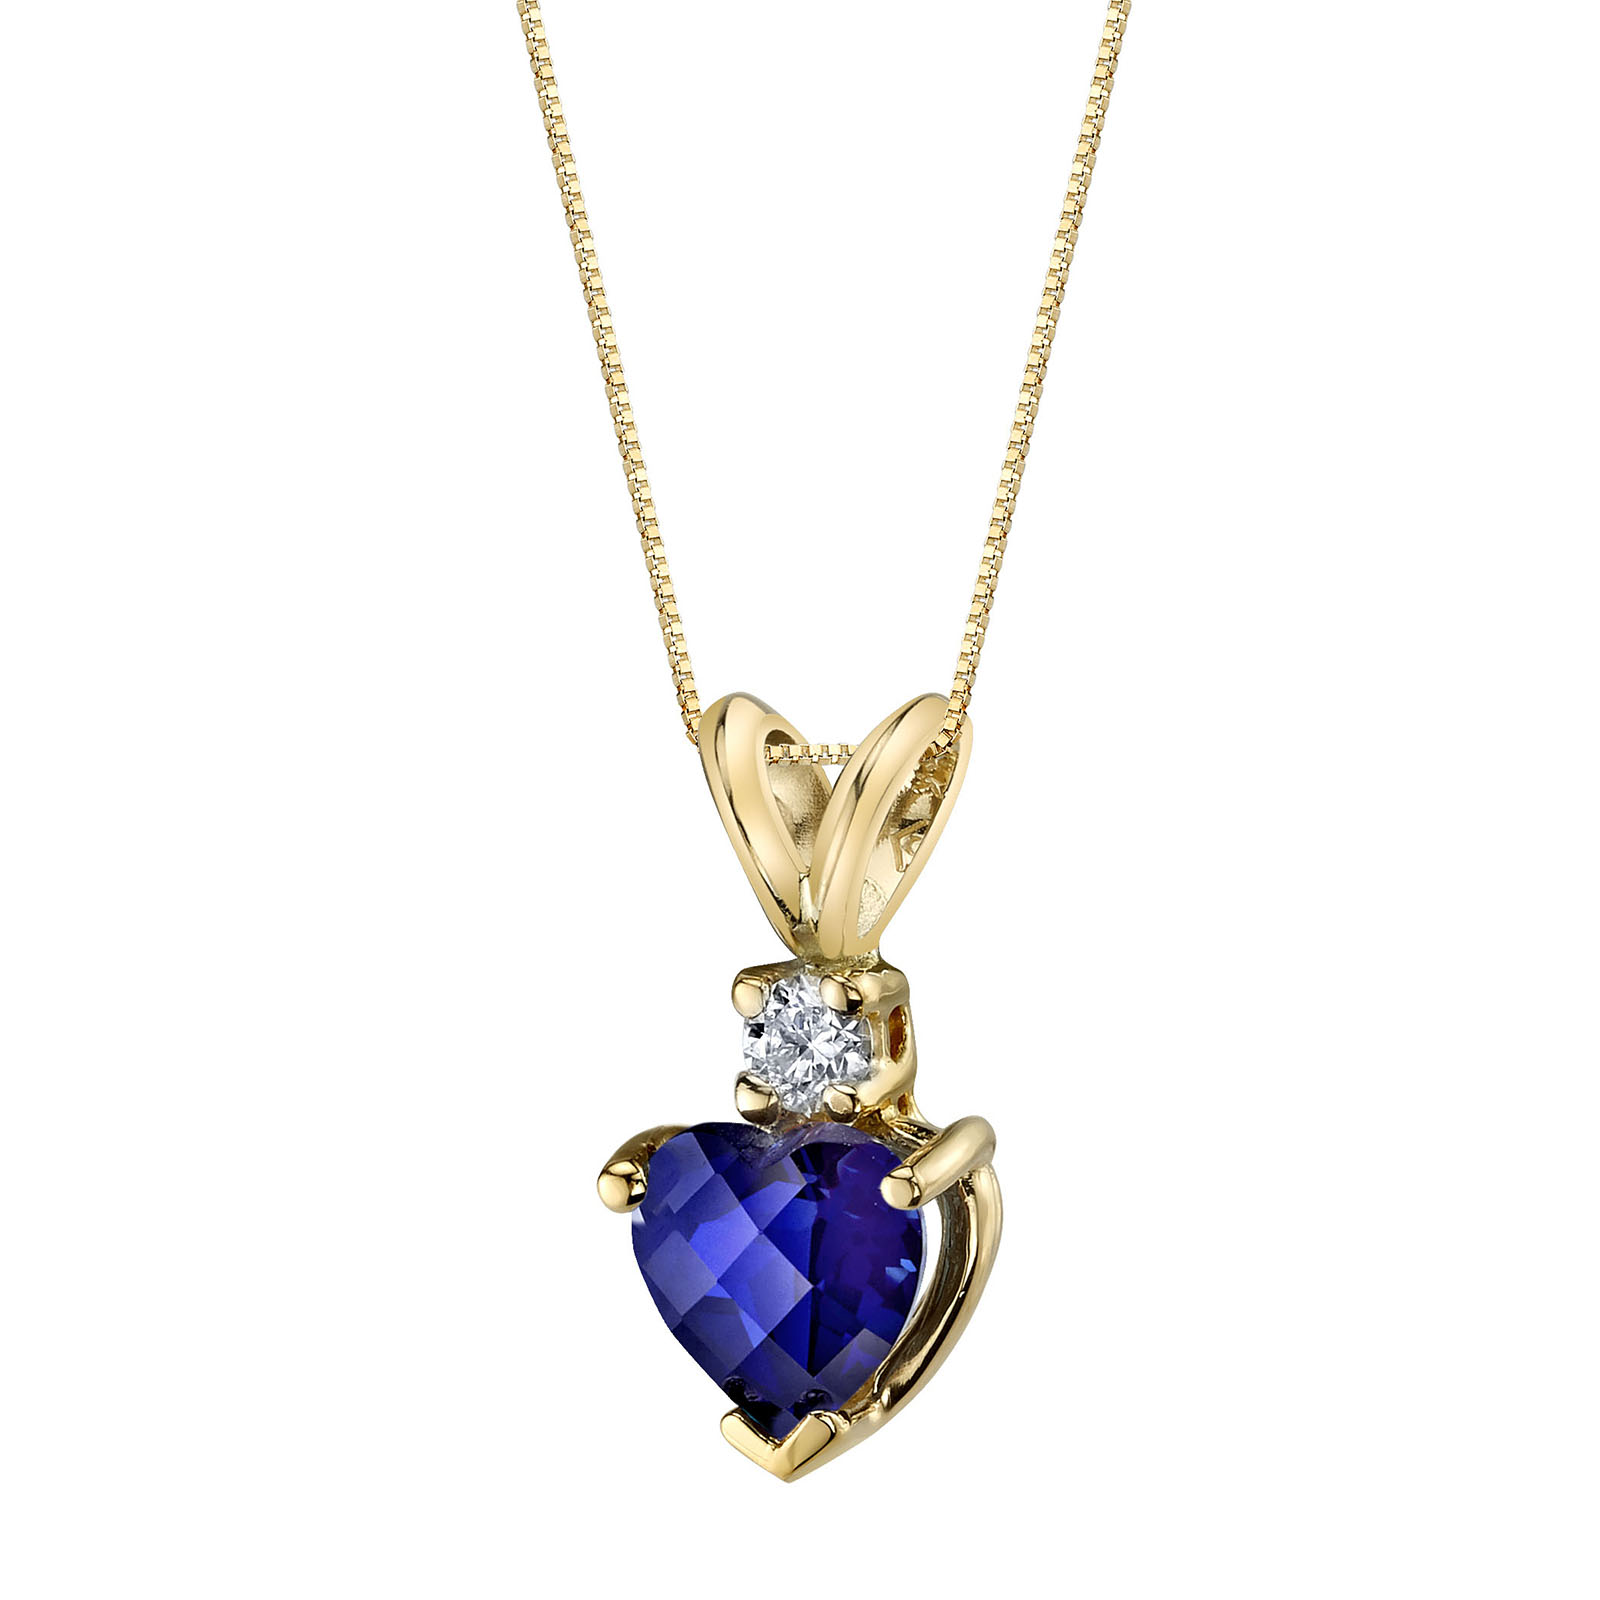 Heart Shaped Sapphire & Diamond 9ct Gold Pendant Necklace with Gold Plated Silver Chain